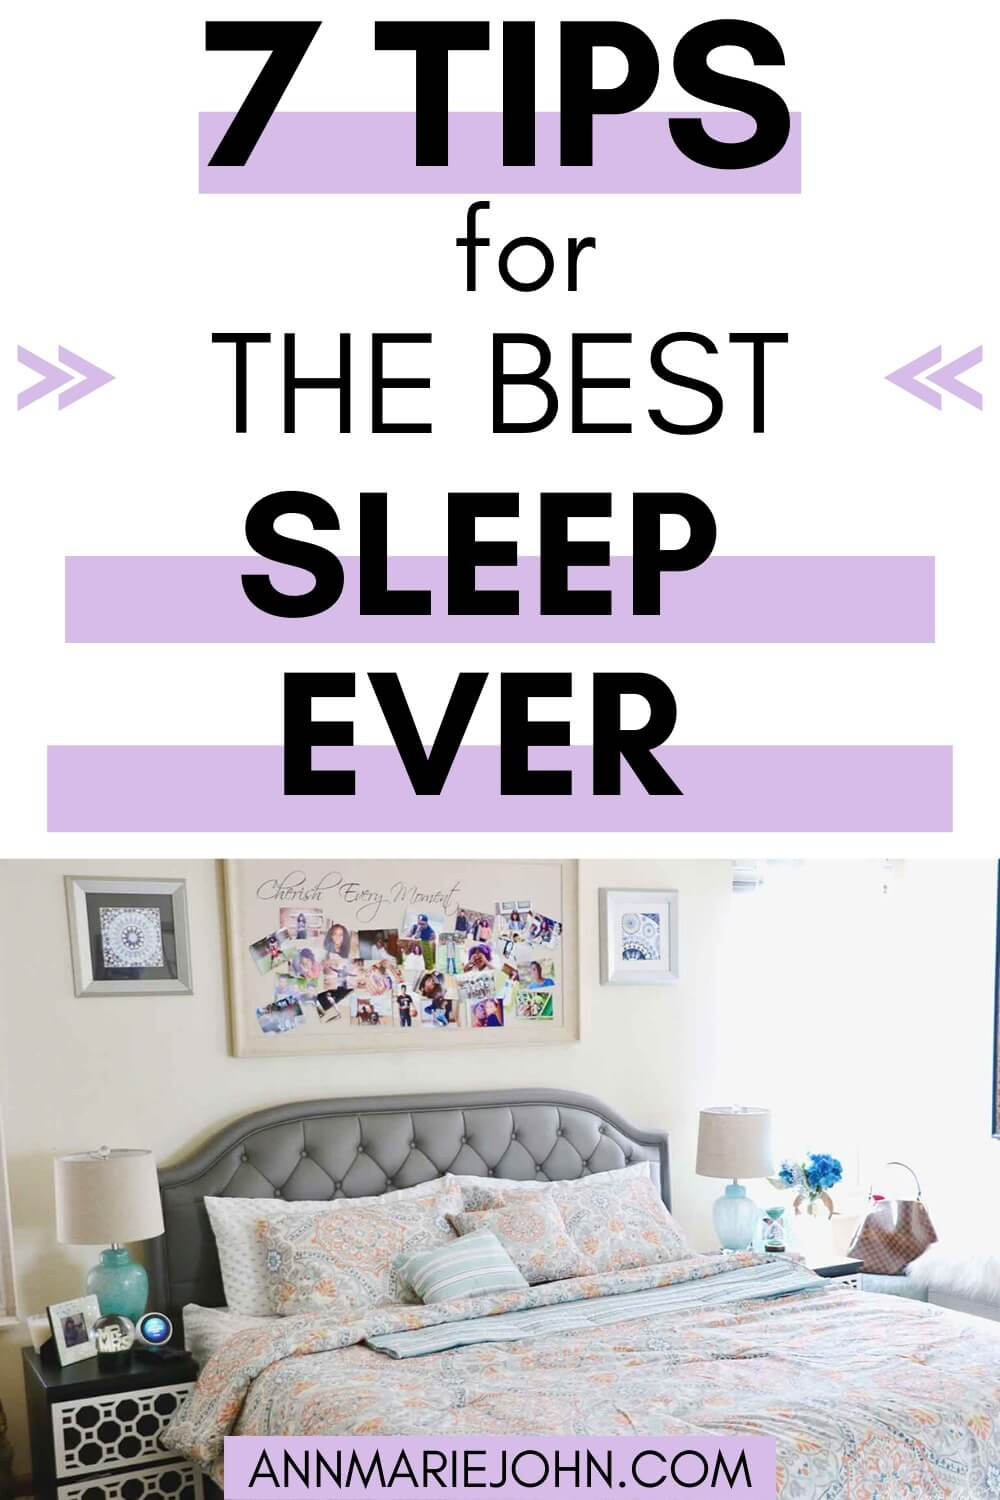 7 tips for the best sleep ever